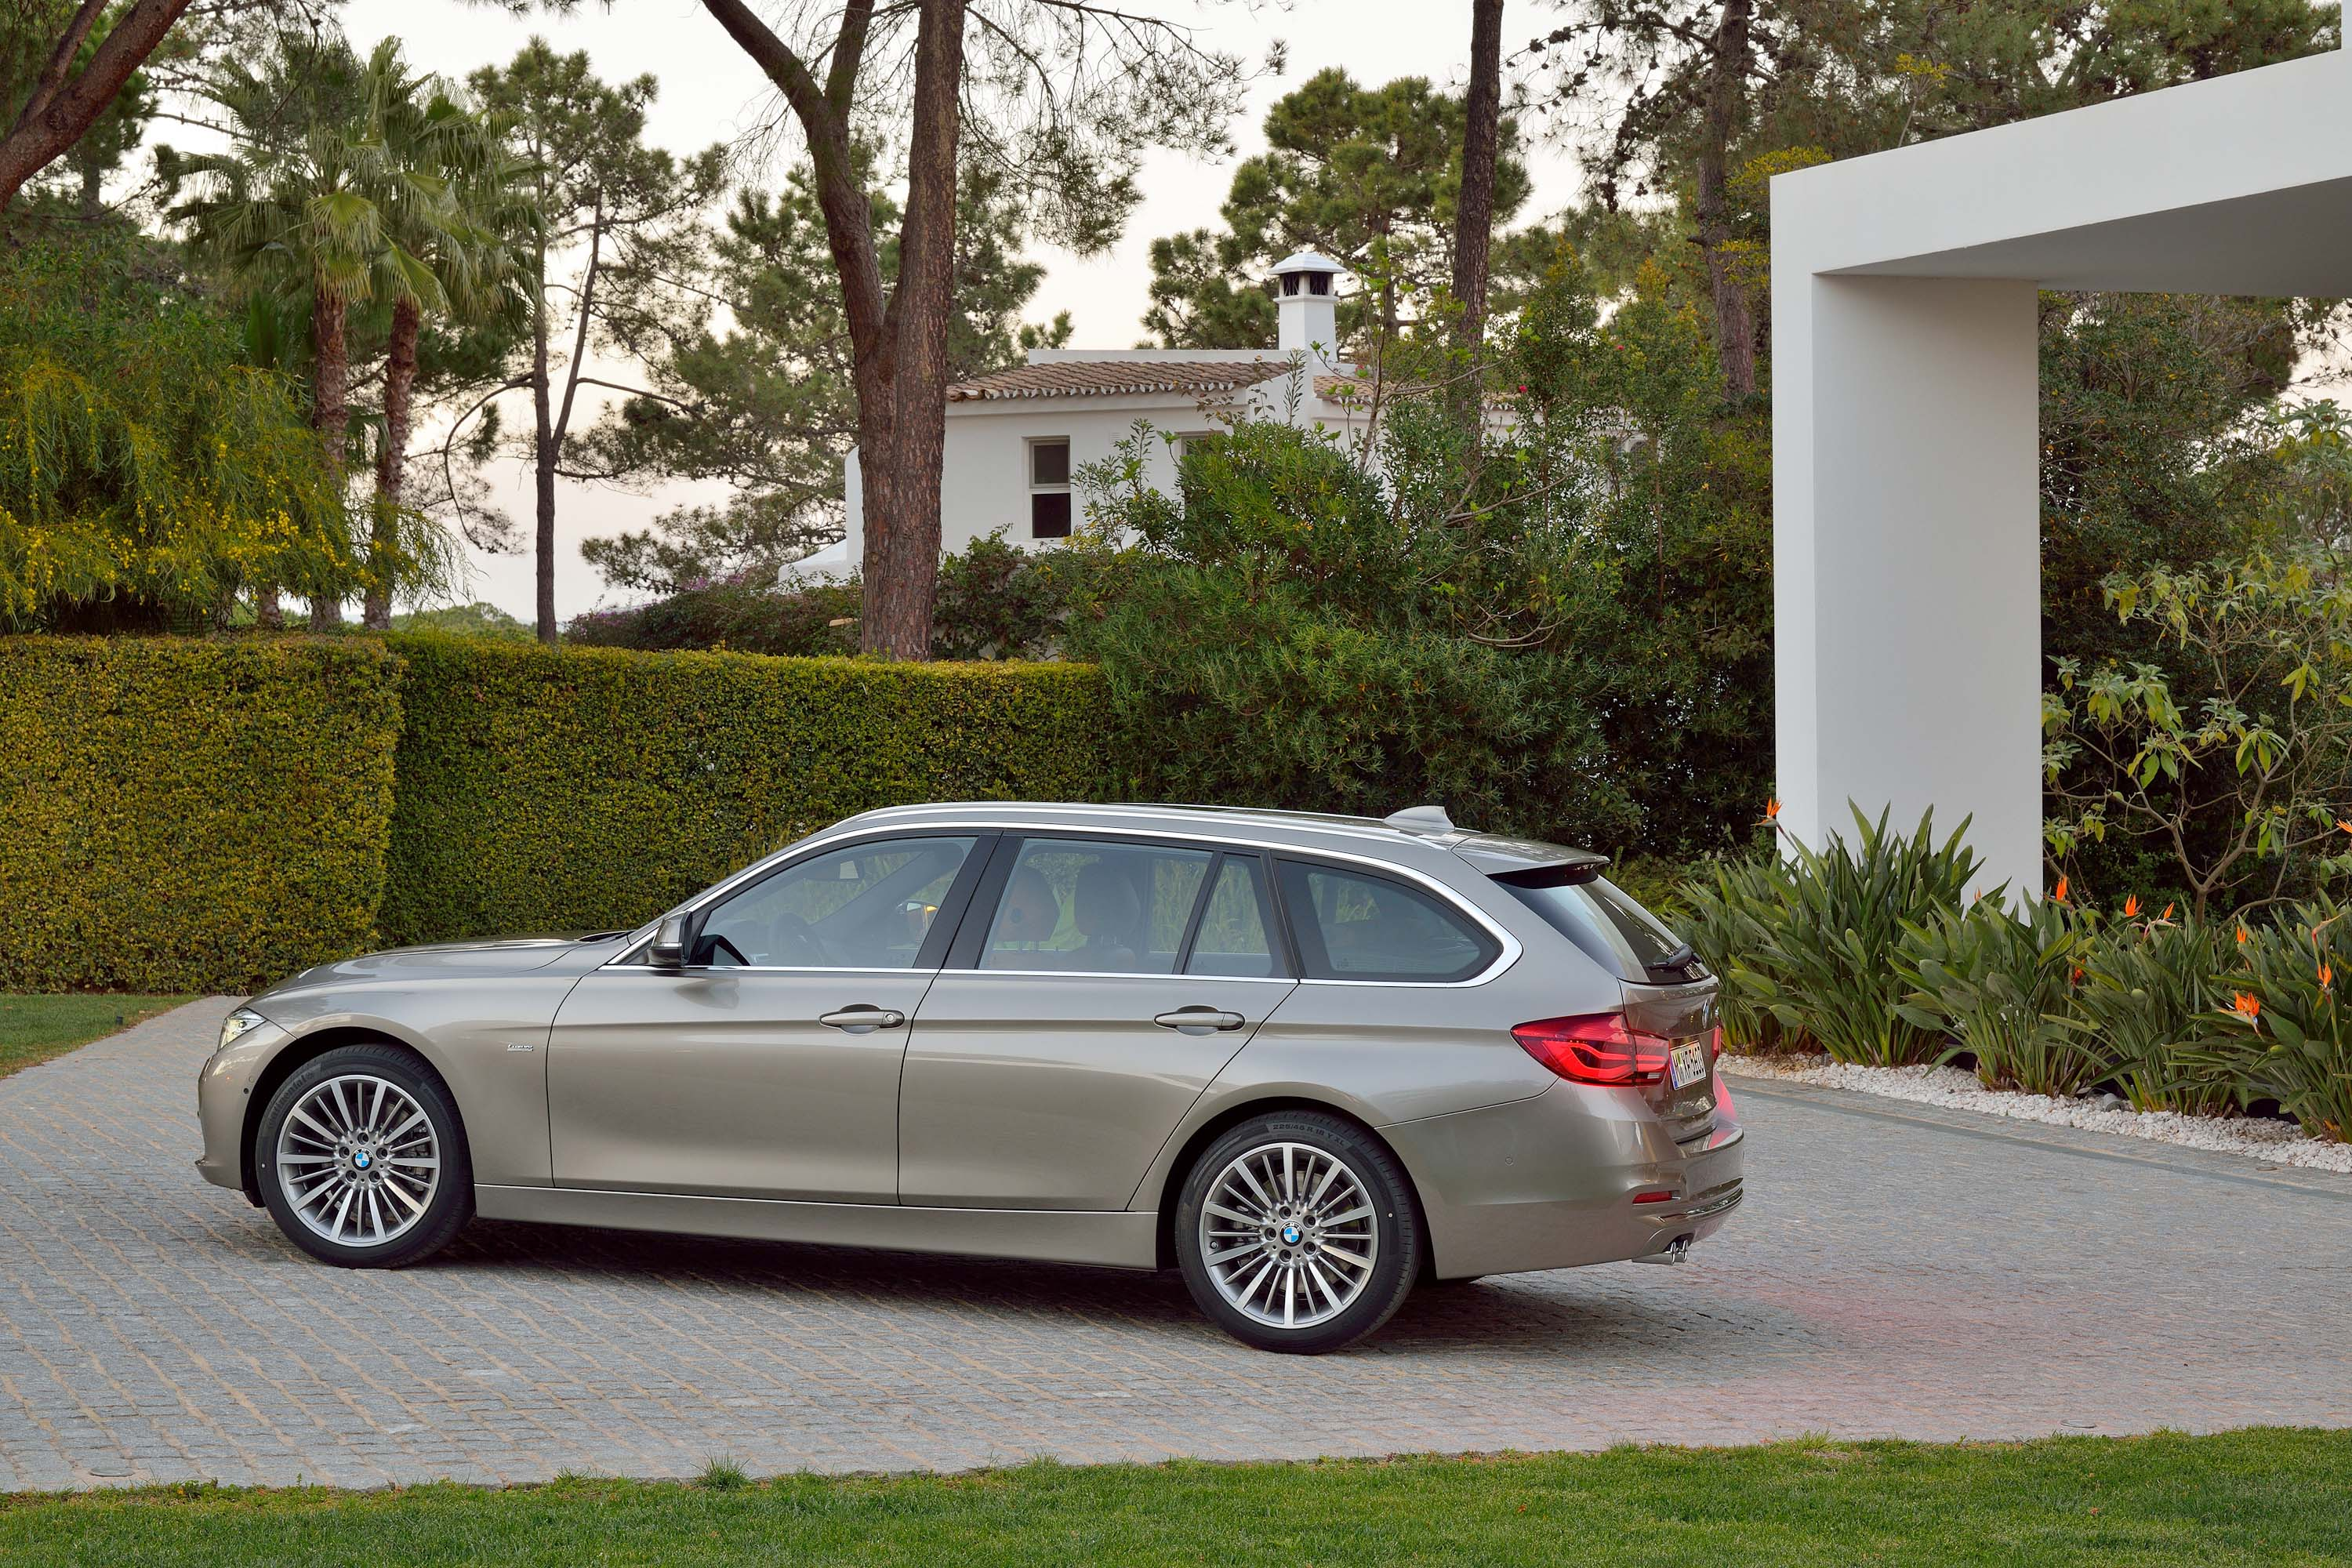 2019 G31 Bmw 3 Series Wagon Won T Be Sold In The Us